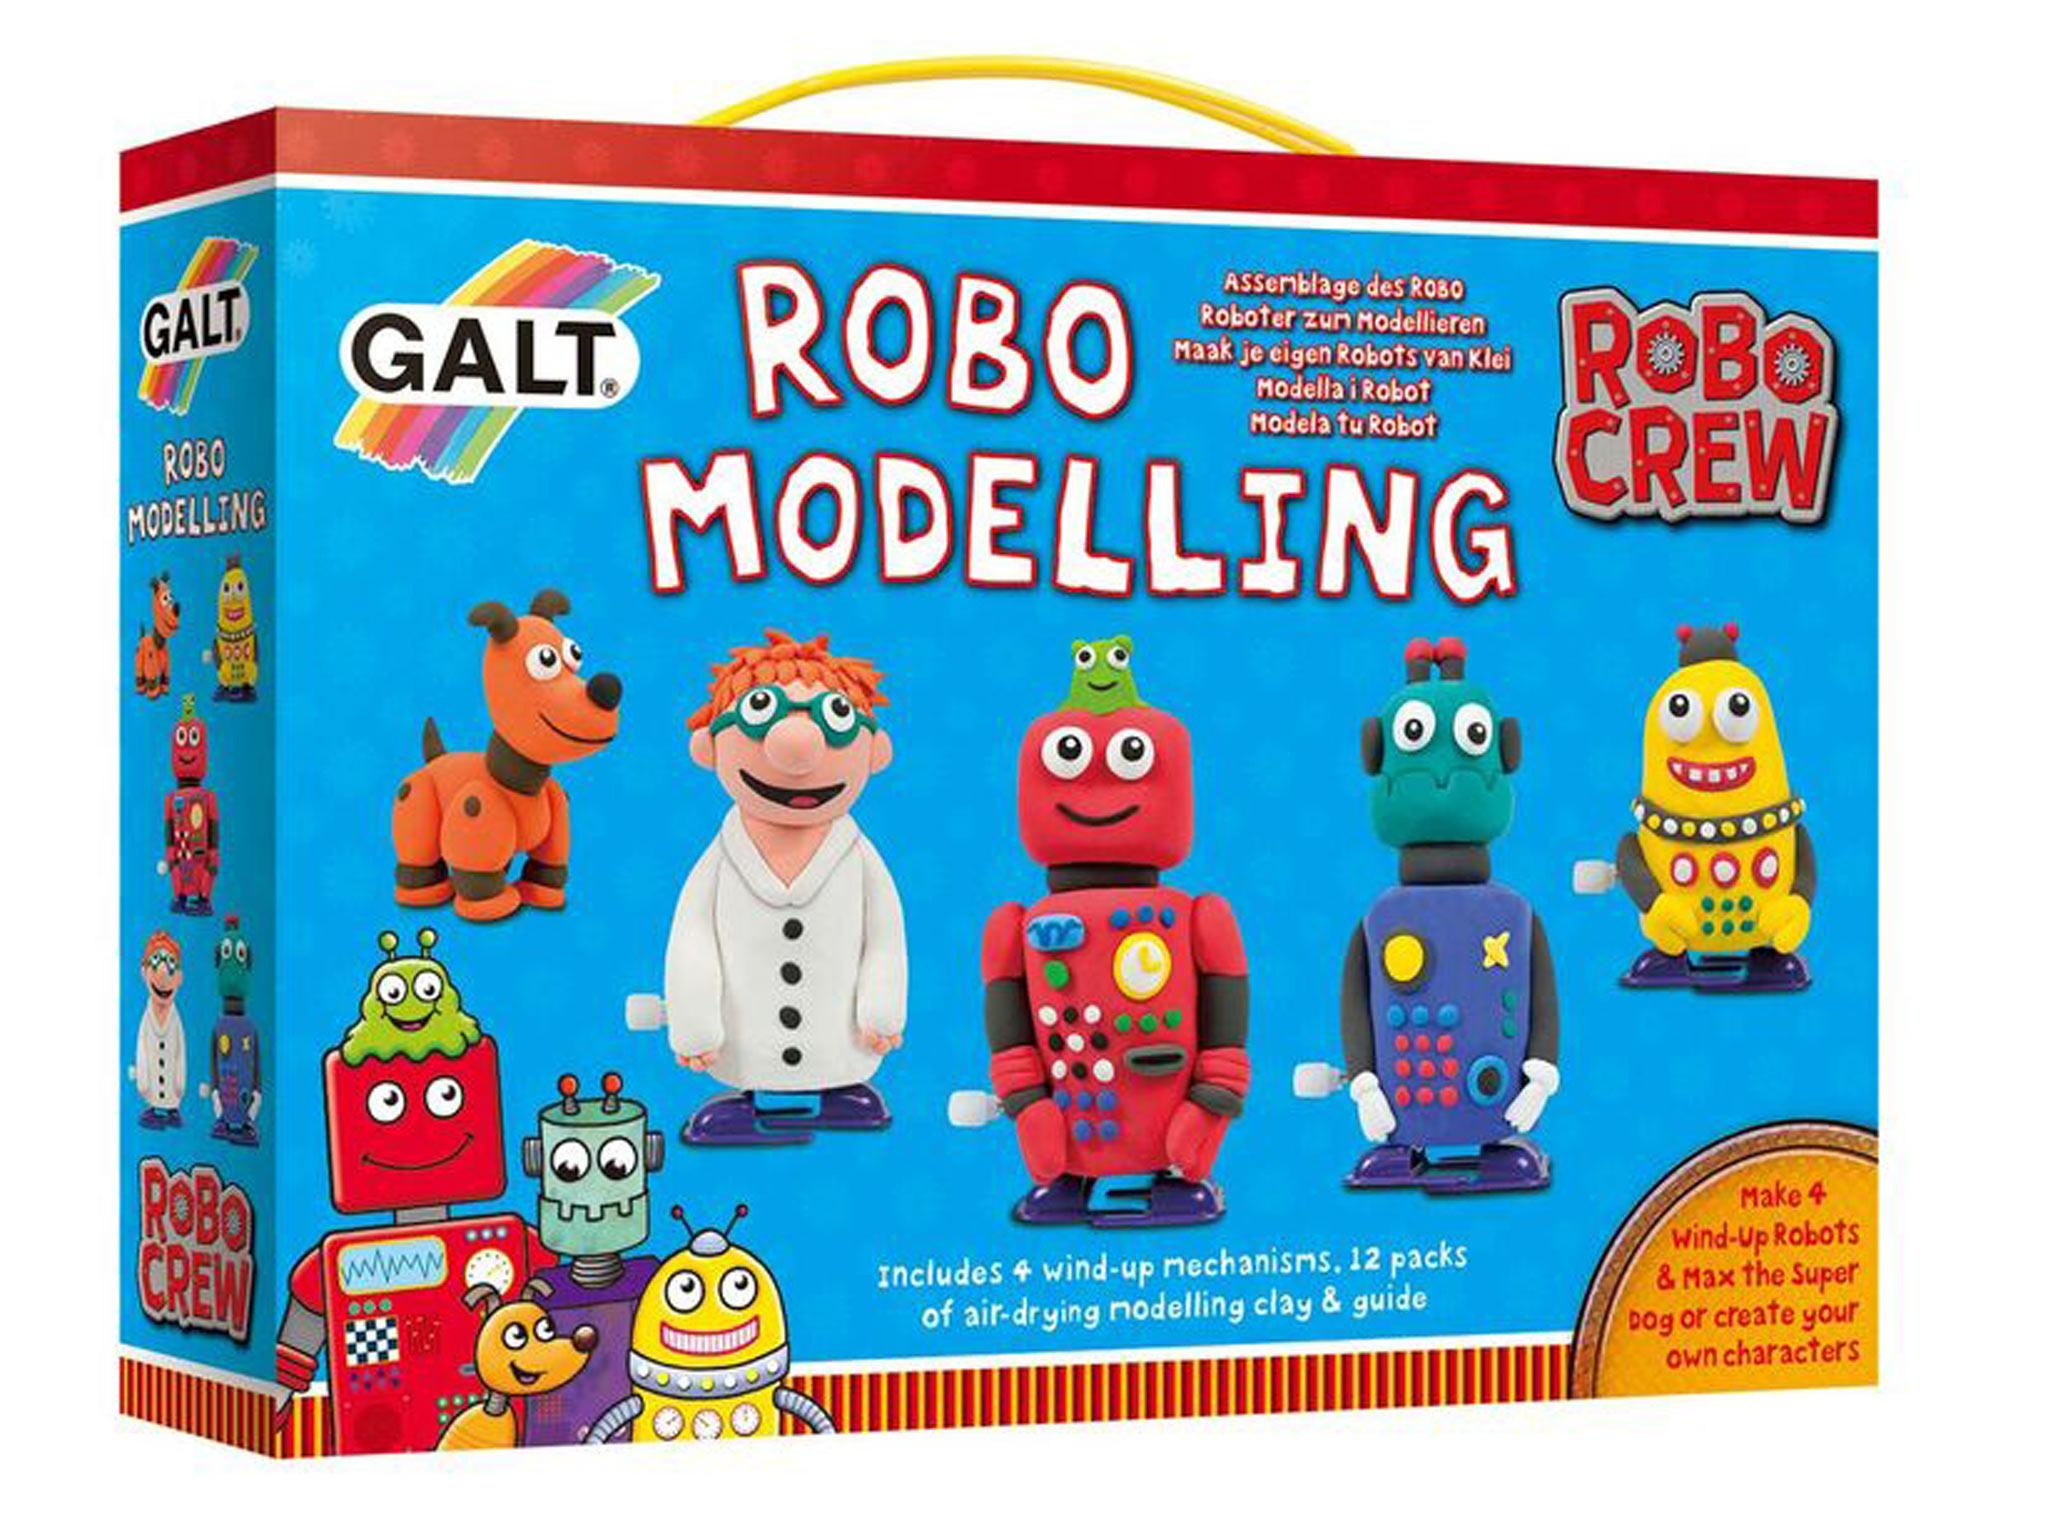 645d0636c You might think of wind-up toys as old fashioned but these make-your-own  wind-up robots are anything but. Model the clay around the mechanisms (four  ...